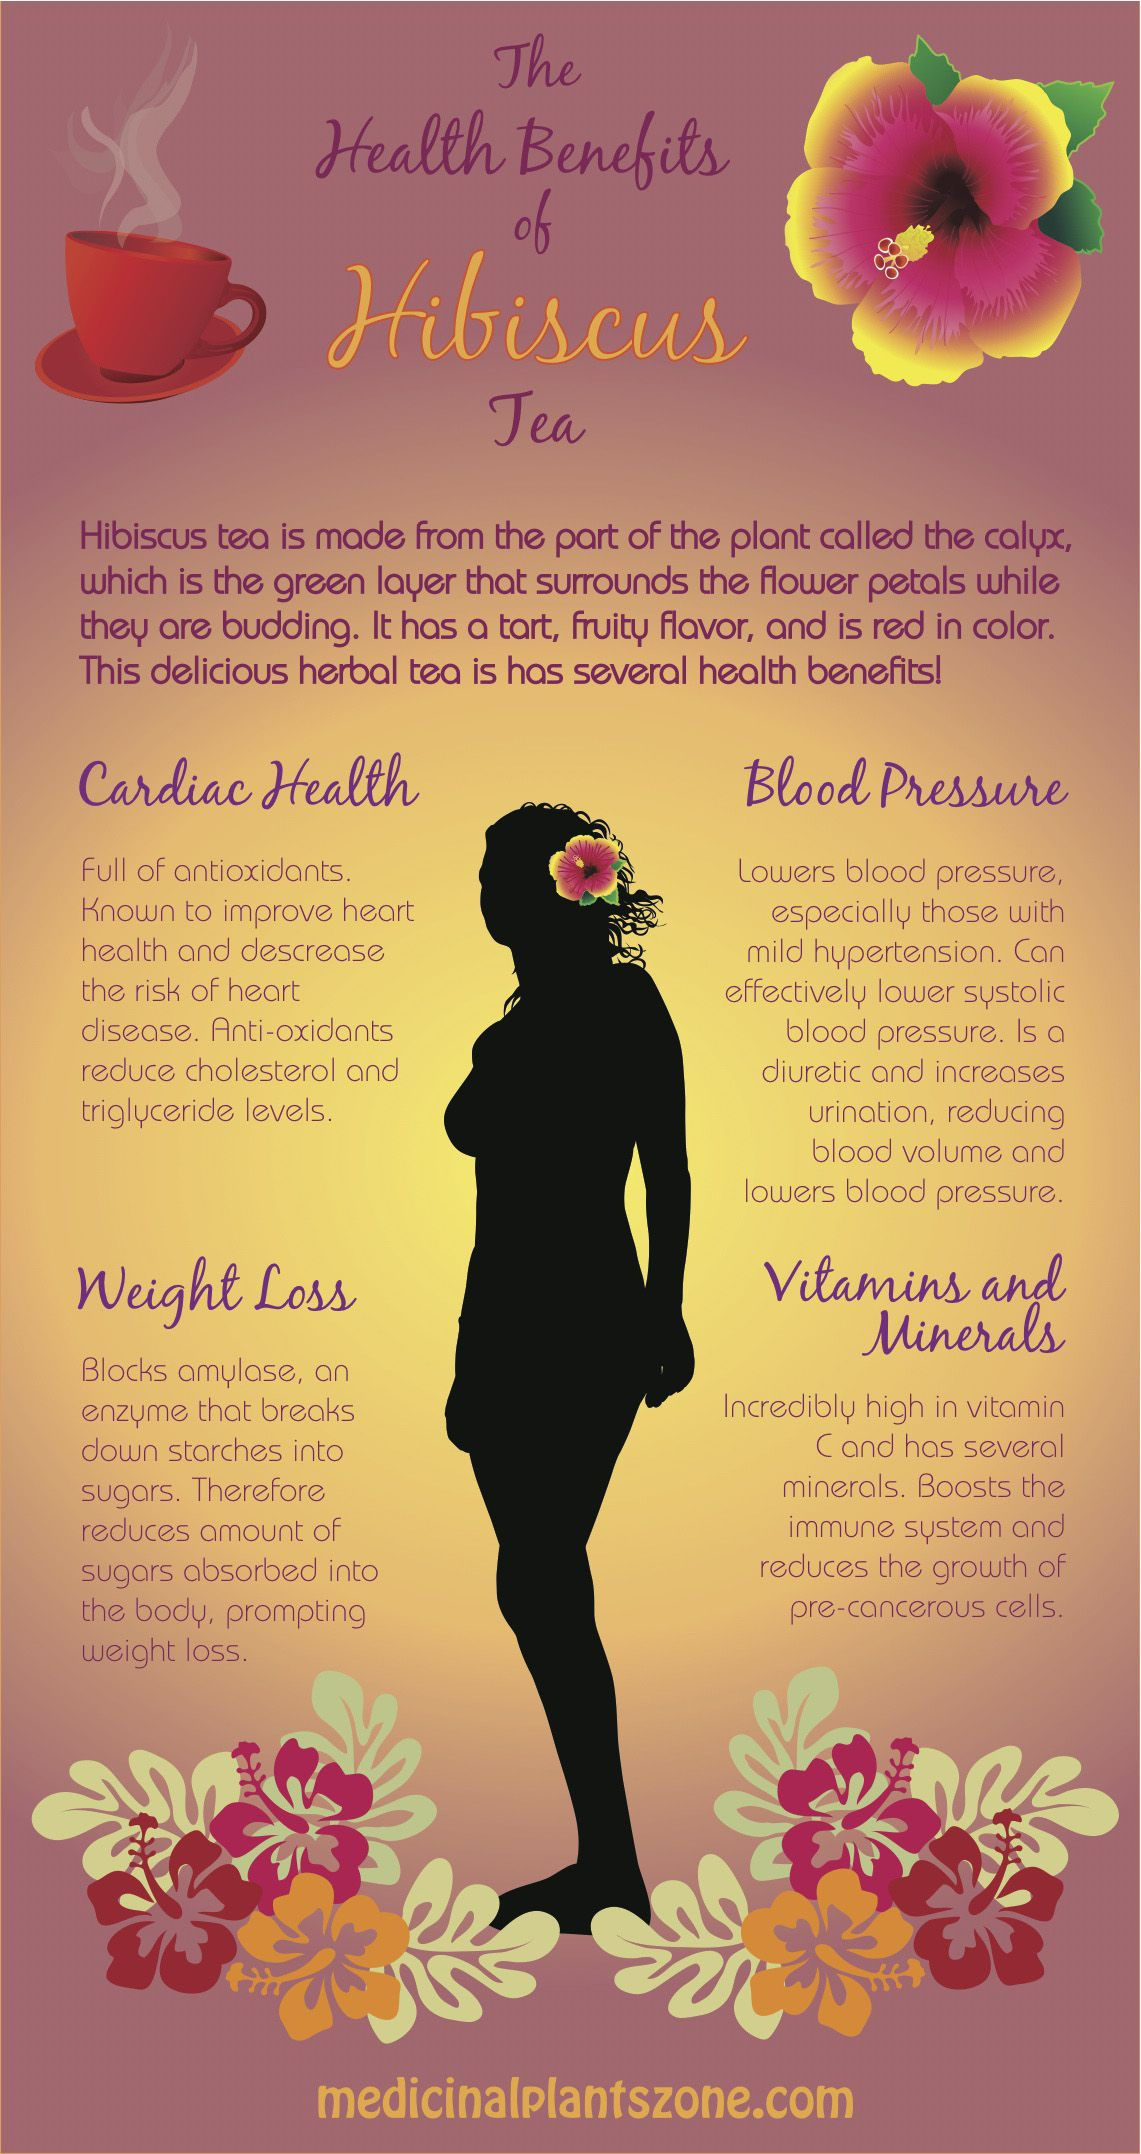 What are the health benefits of drinking hibiscus tea?